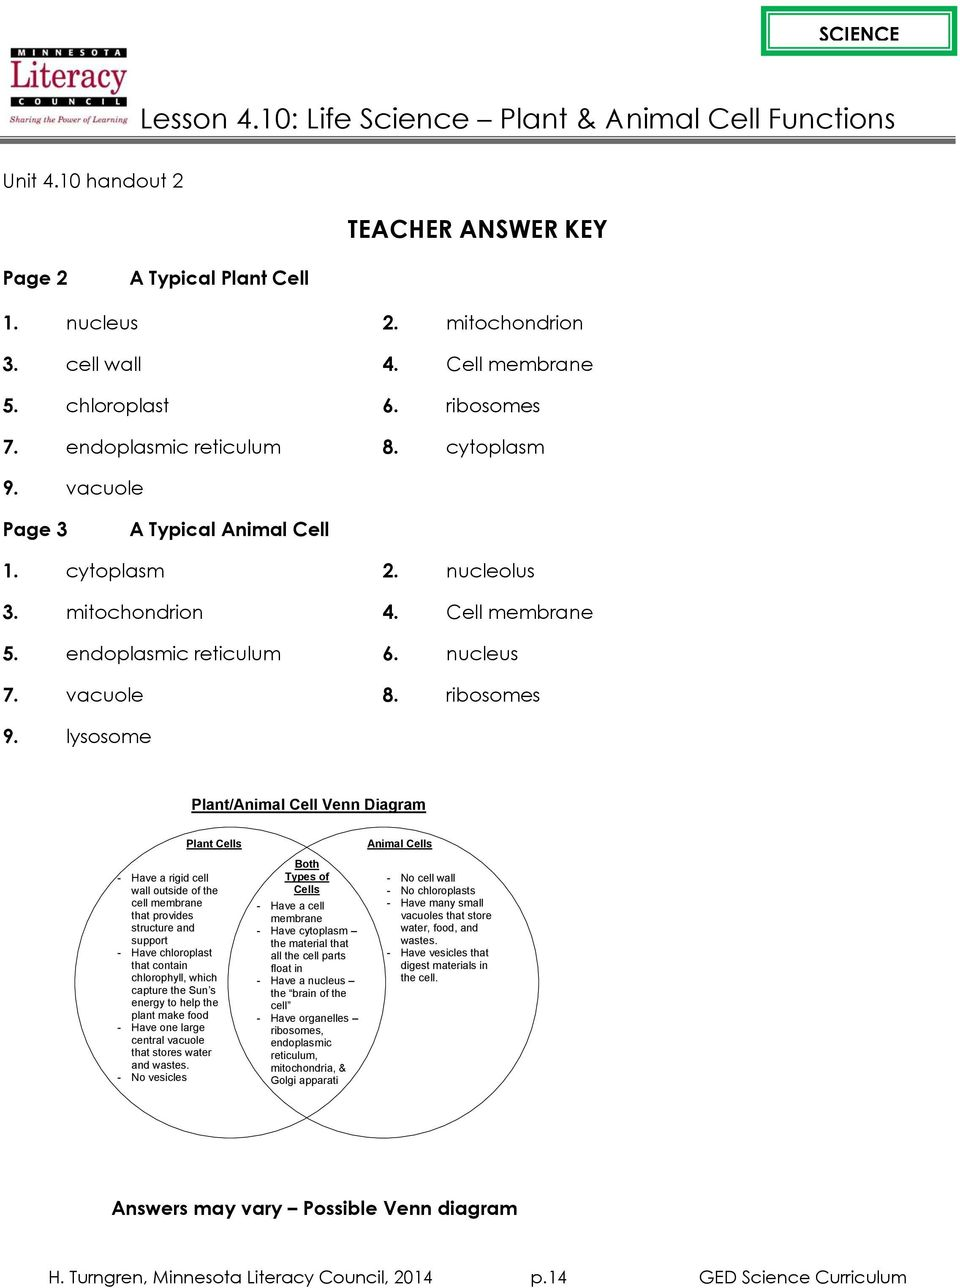 Lesson 410 life science plant animal cell functions pdf lysosome plantanimal cell venn diagram plant cells have a rigid cell wall outside malvernweather Gallery